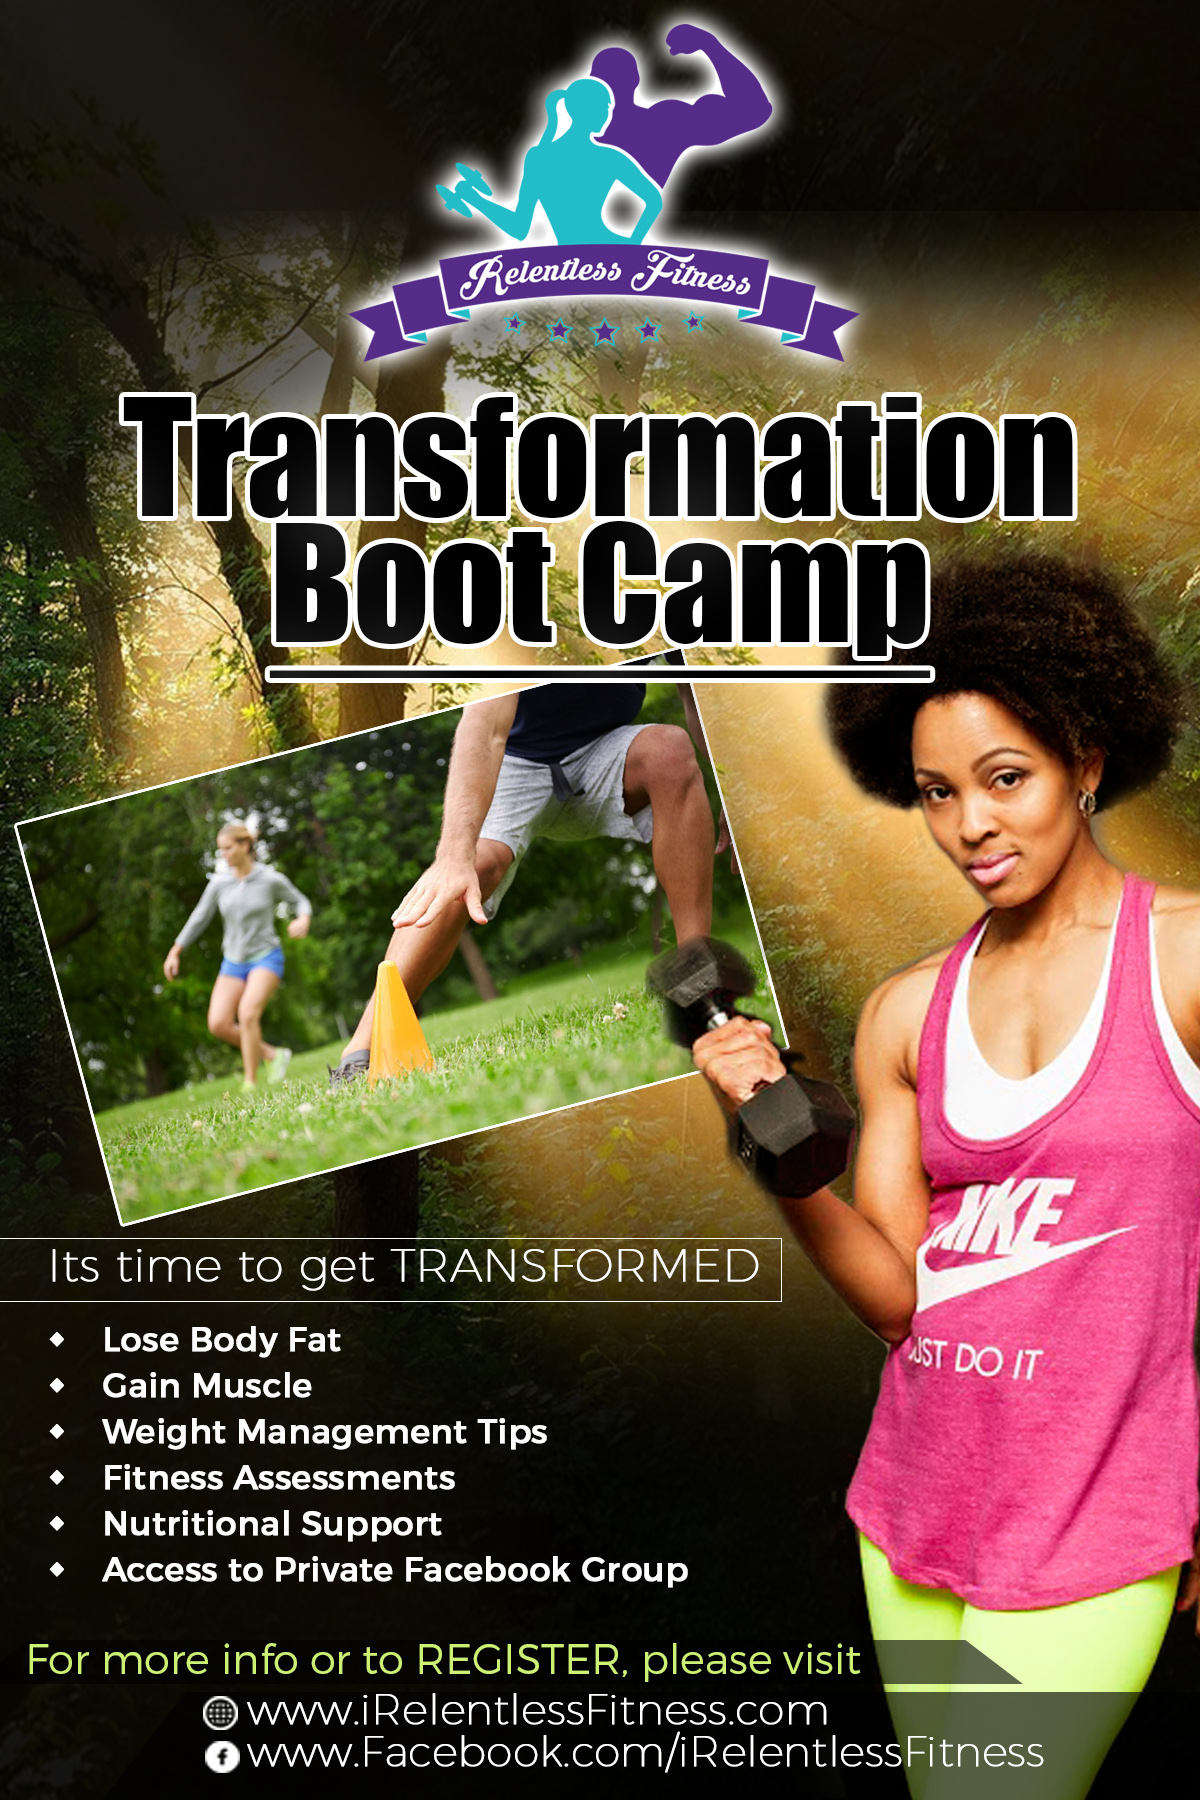 Transformation Boot Camp Flyer